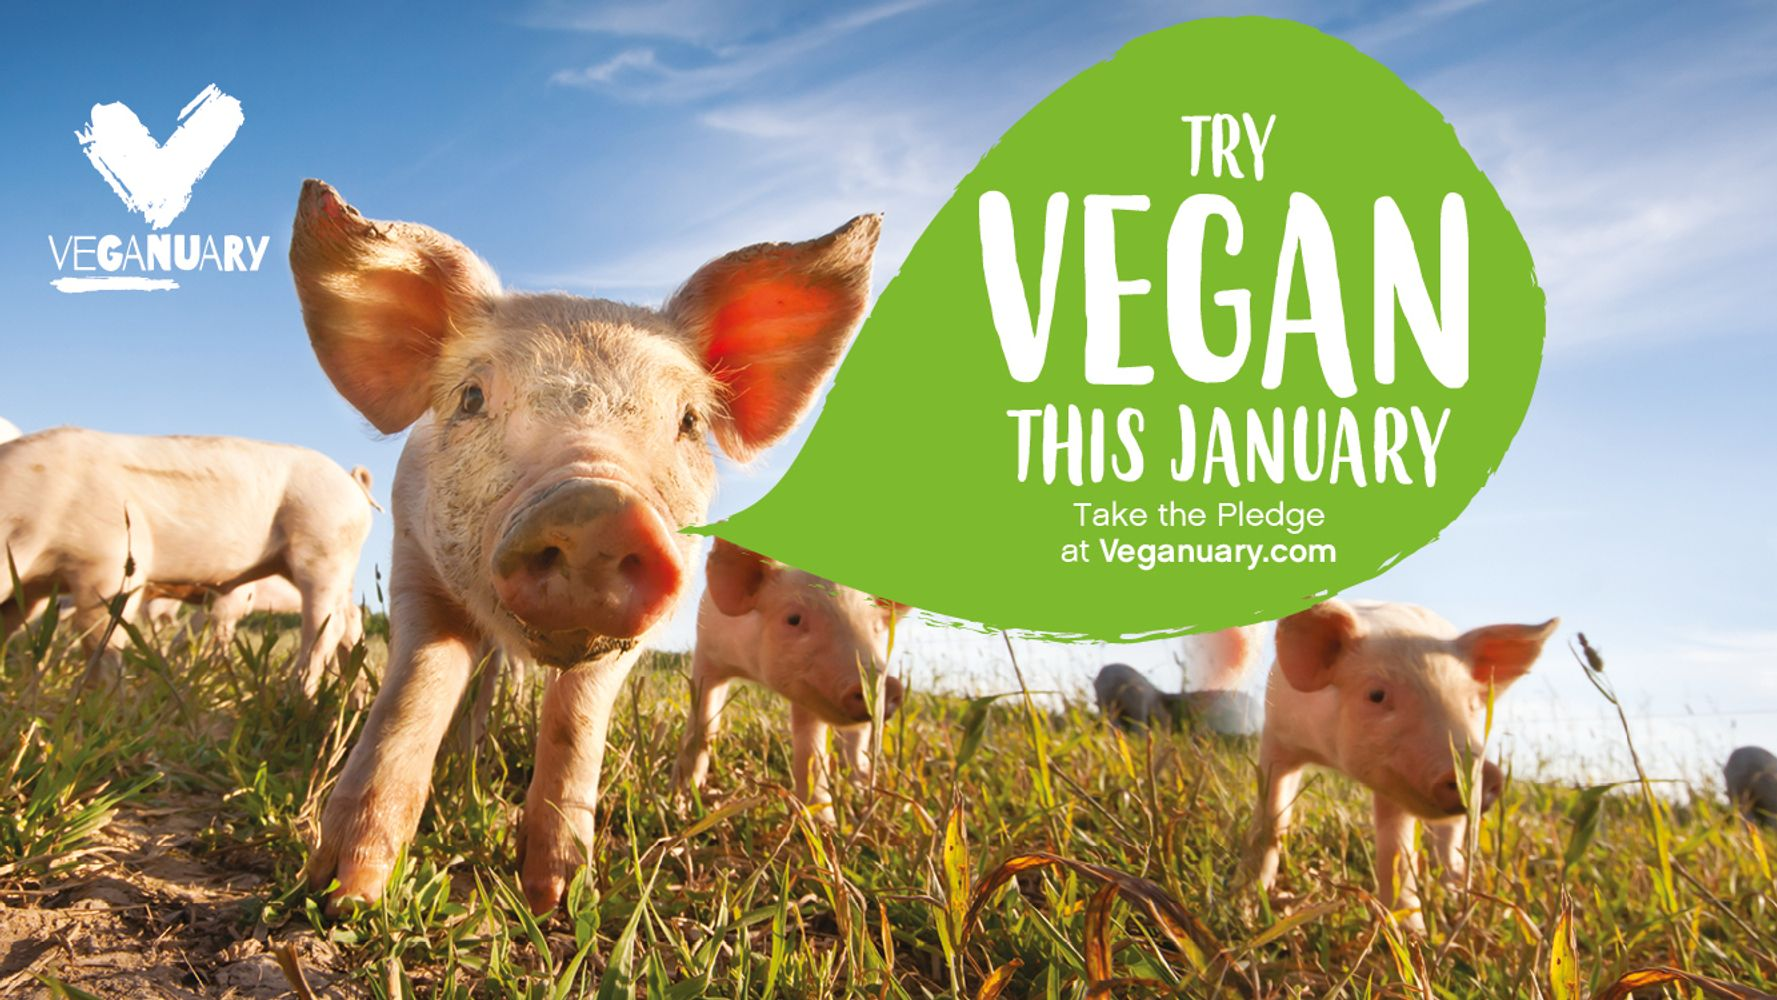 TIPS TO HELP YOU SUCCEED AT VEGANUARY 2021